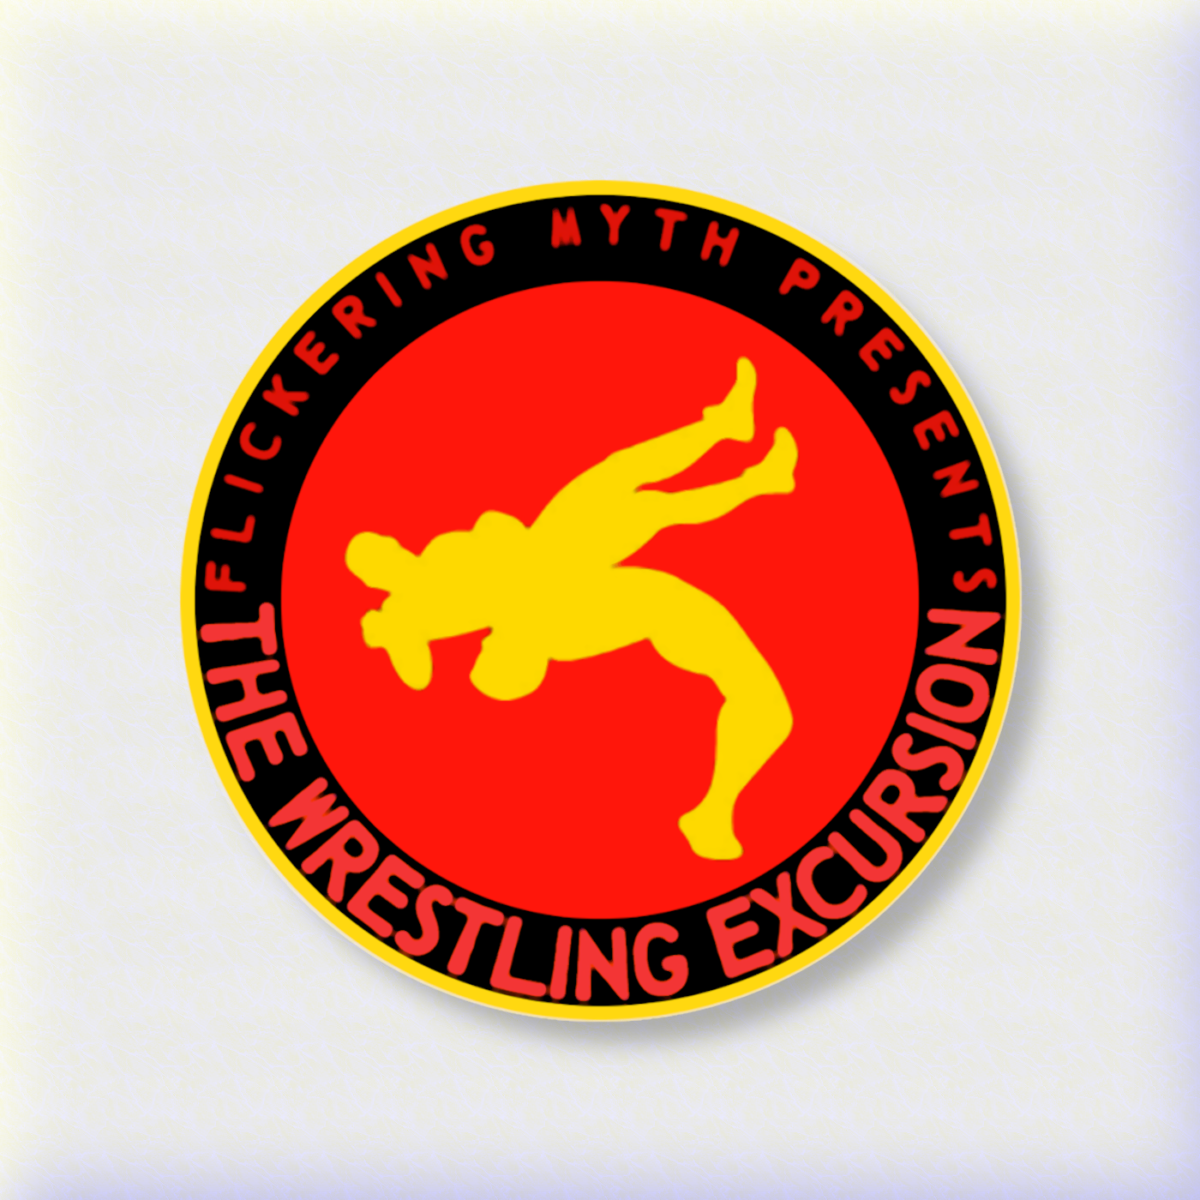 Introducing The Wrestling Excursion to the Flickering Myth Podcast Network